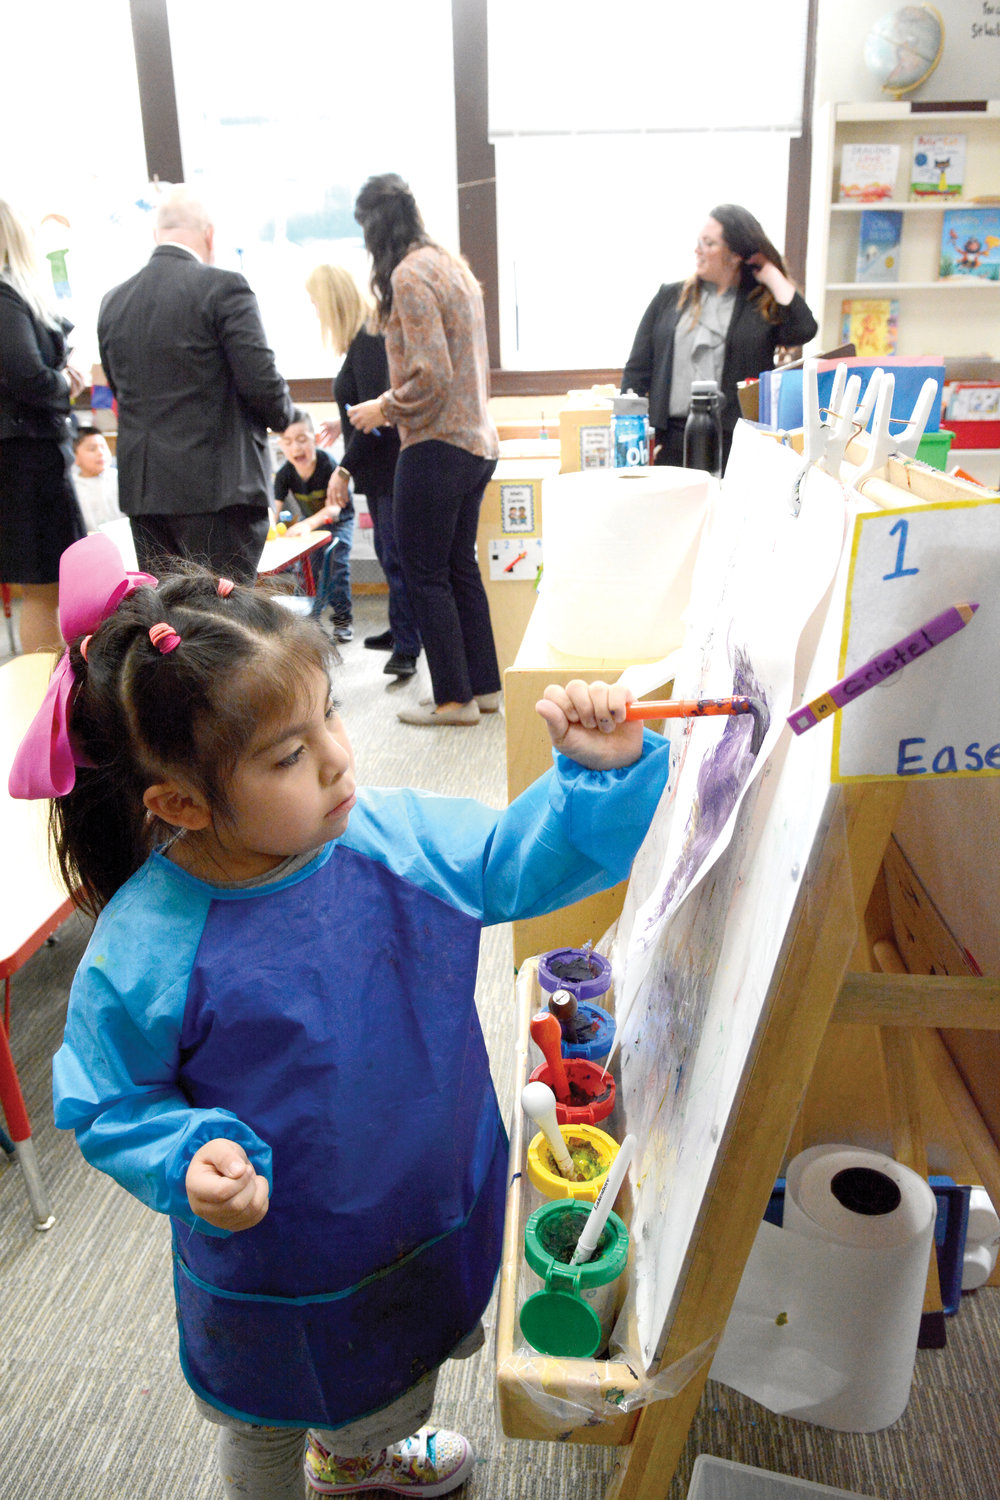 ARTIST AT WORK—Cristel Cuadros, who is enrolled in the new universal pre-k program at Corpus Christi-Holy Rosary School in Port Chester, enjoys painting during class Jan. 31, the same day Cardinal Dolan visited and blessed the remodeled Central Avenue building that houses the program.